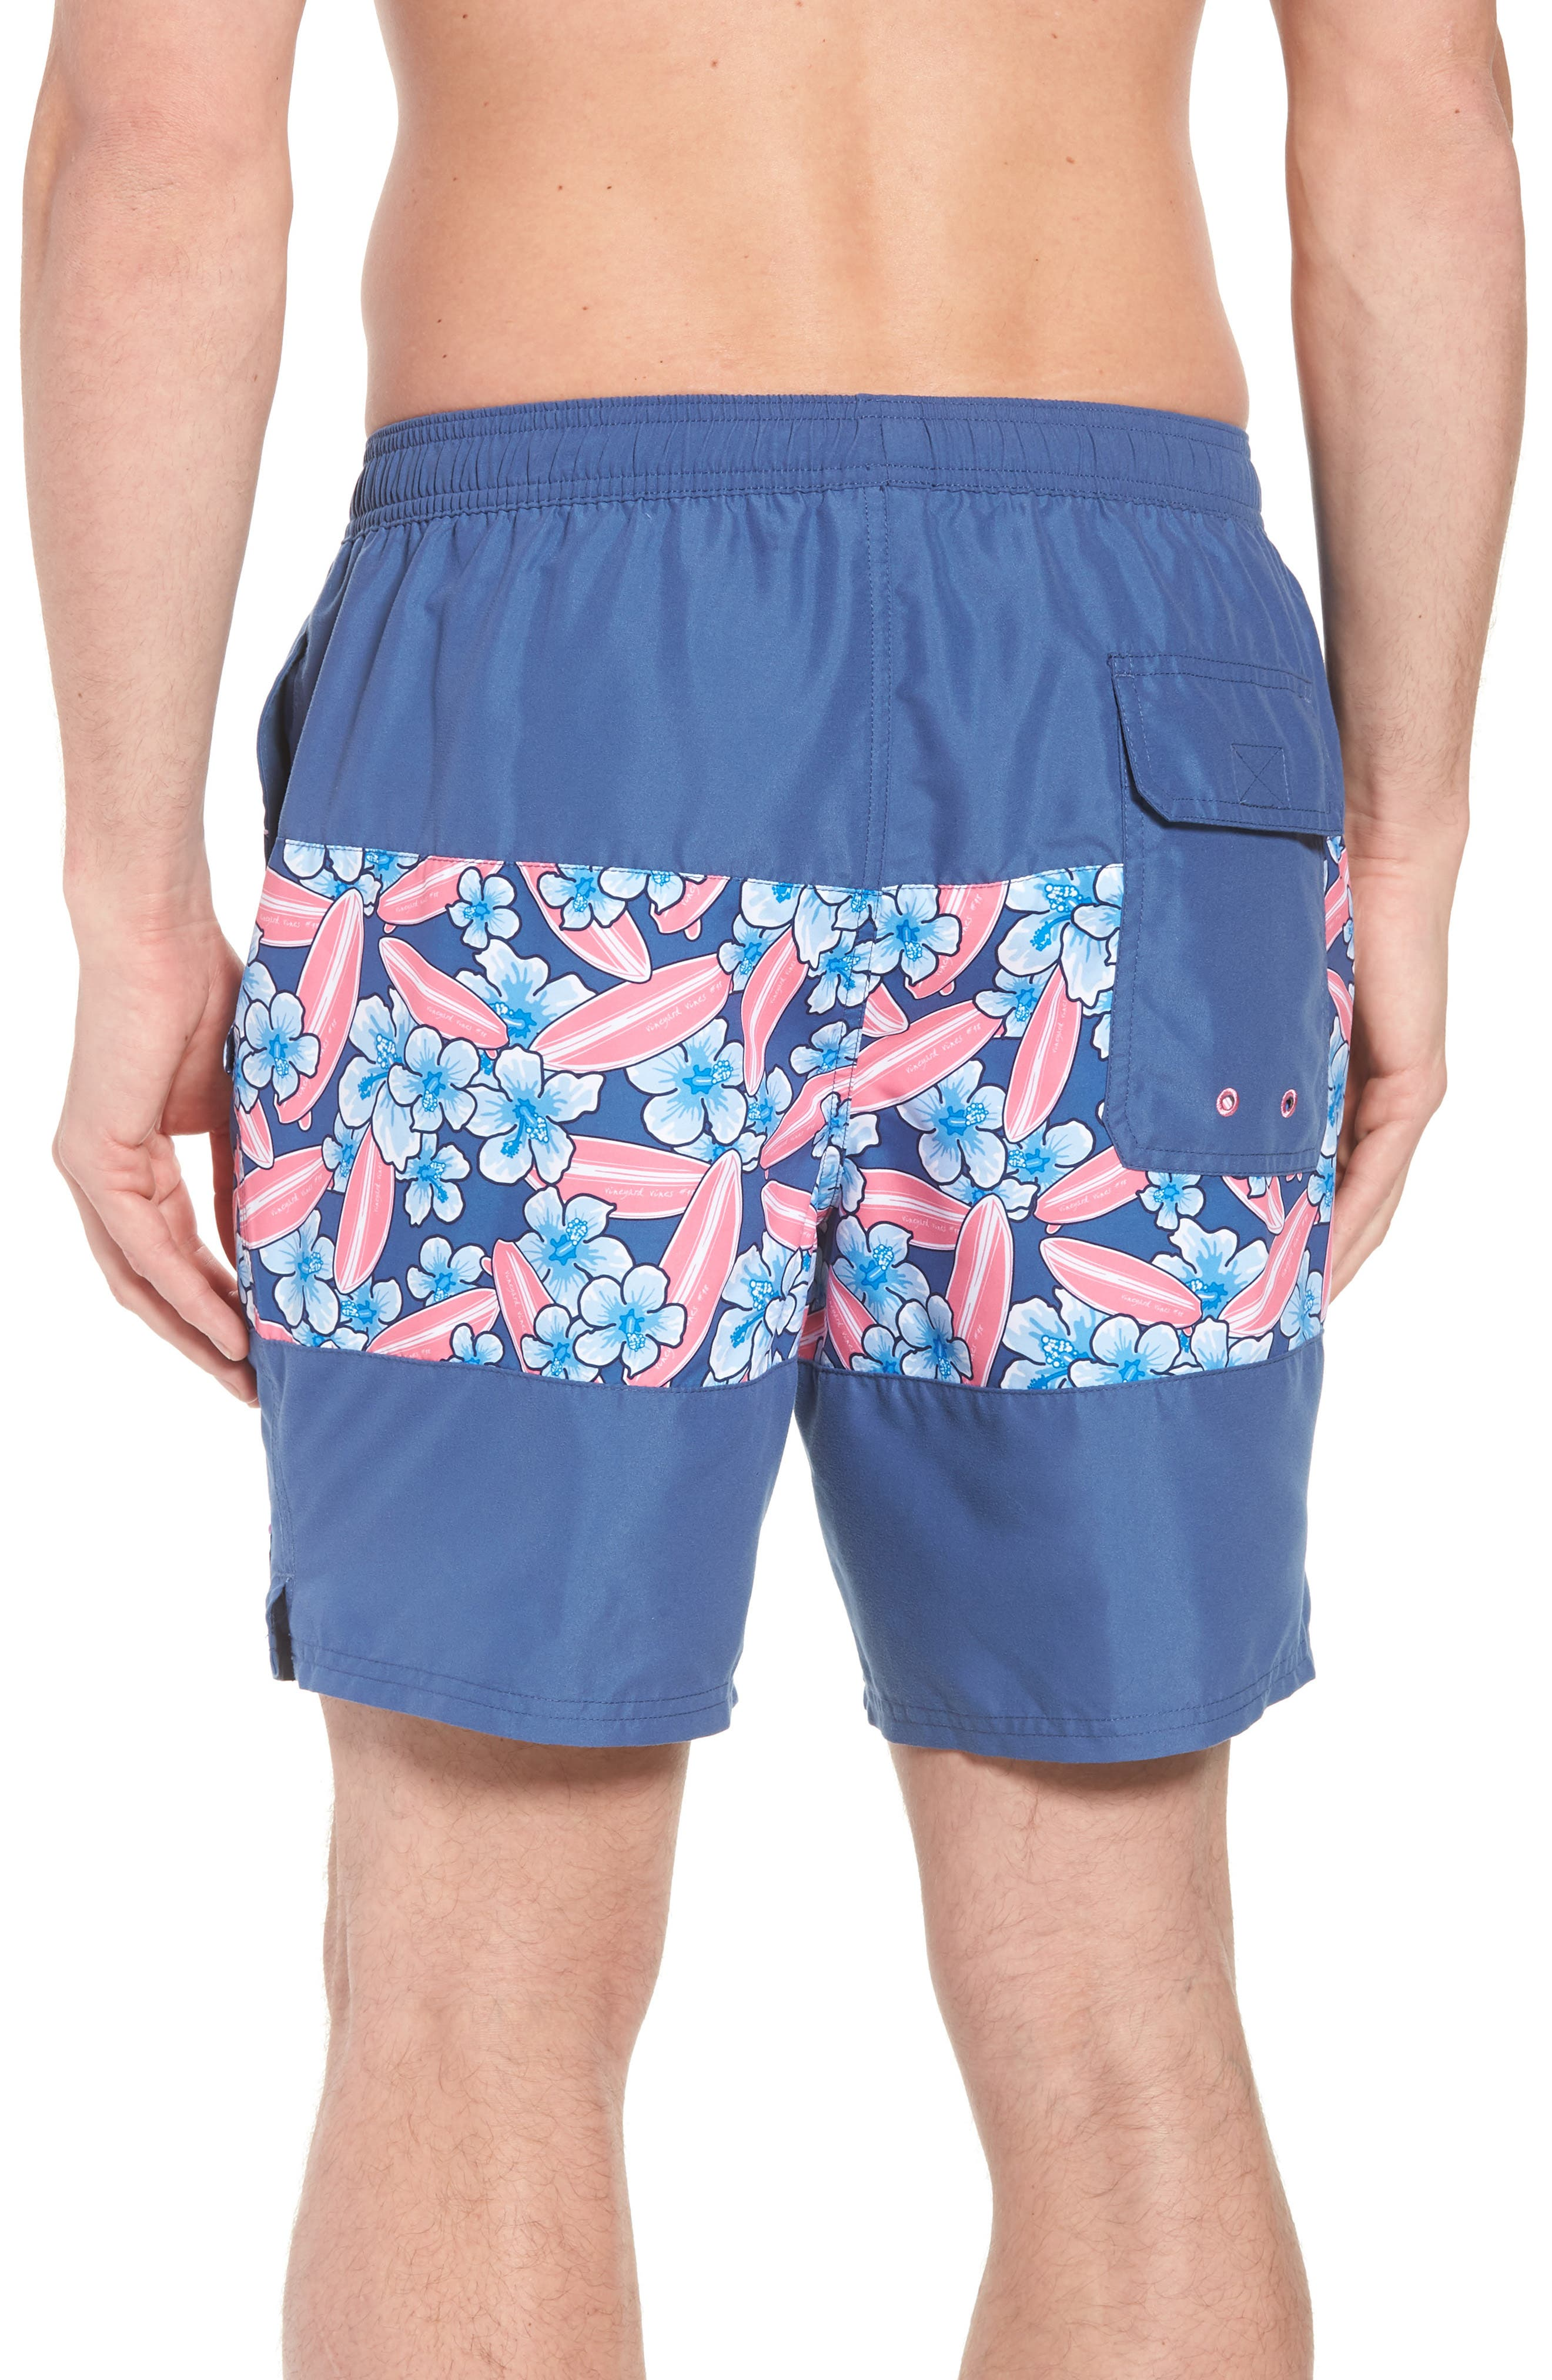 Chappy Pieced Surfboard Swim Trunks,                             Alternate thumbnail 2, color,                             461